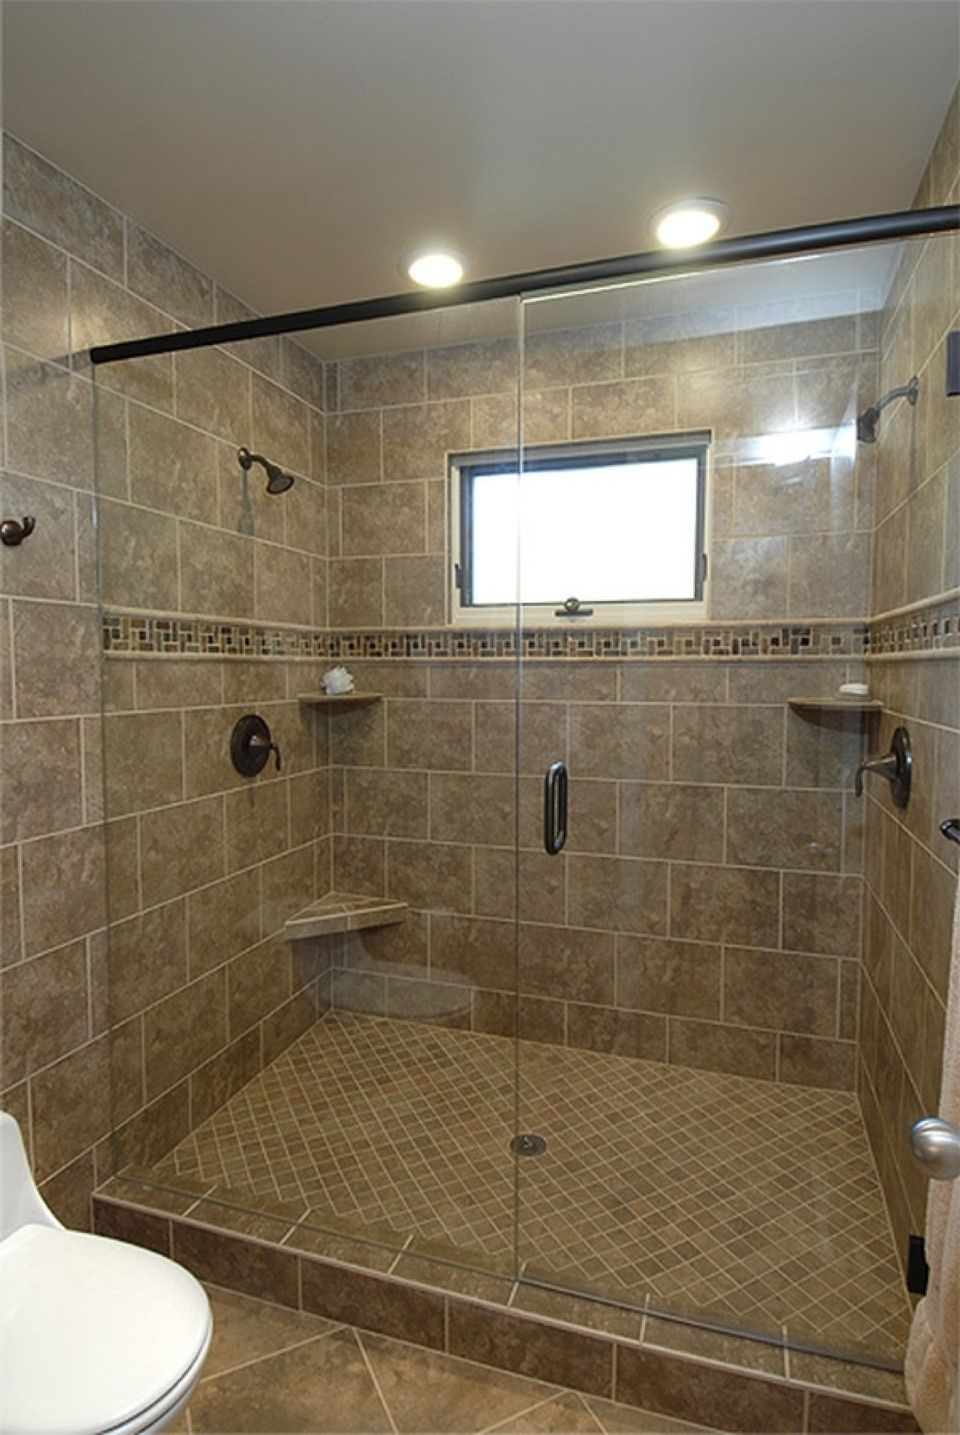 Showers With Bullnose Around Window Google Search Bathroom Ideas Pinterest Showers